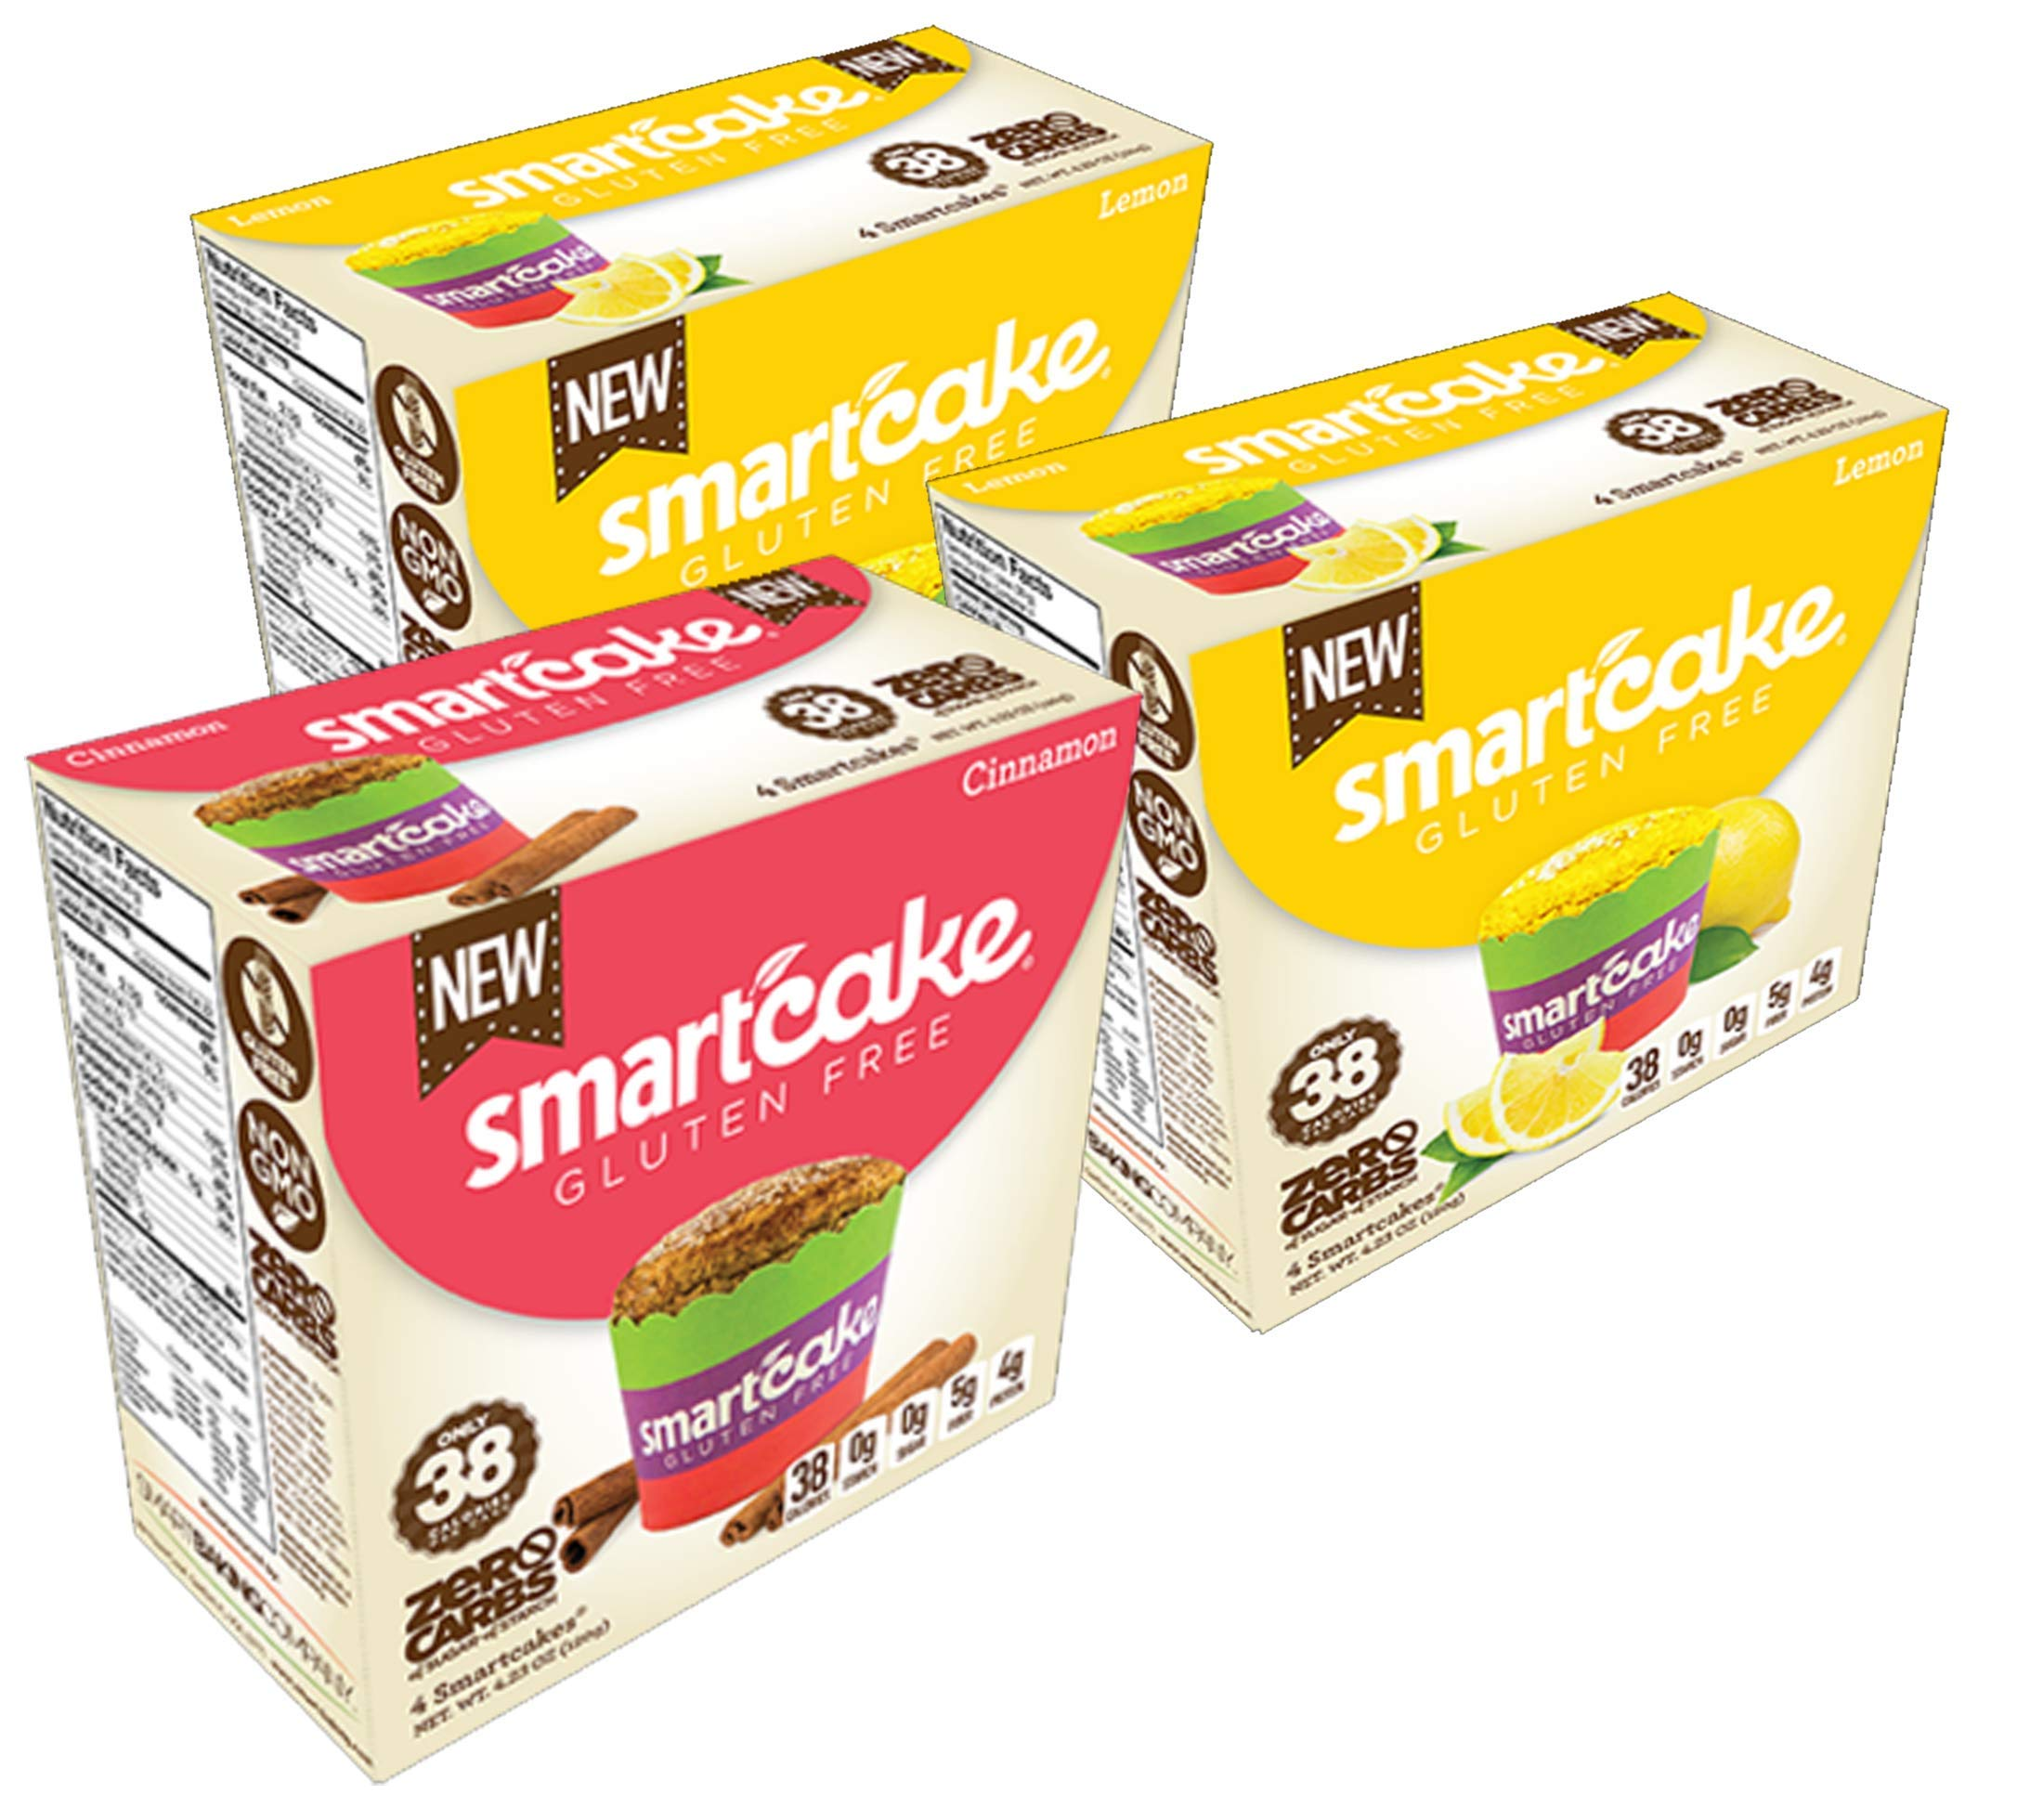 SMARTCAKE BUNDLE HAS 2x LEMON SMARTCAEK BOXES and 1x CINNAMON SMARTCAKE BOX, THEY ARE GLUTEN FREE, SUGAR FREE, LOW CARB SNACK CAKES: 6x twin packs (12 individual cakes)